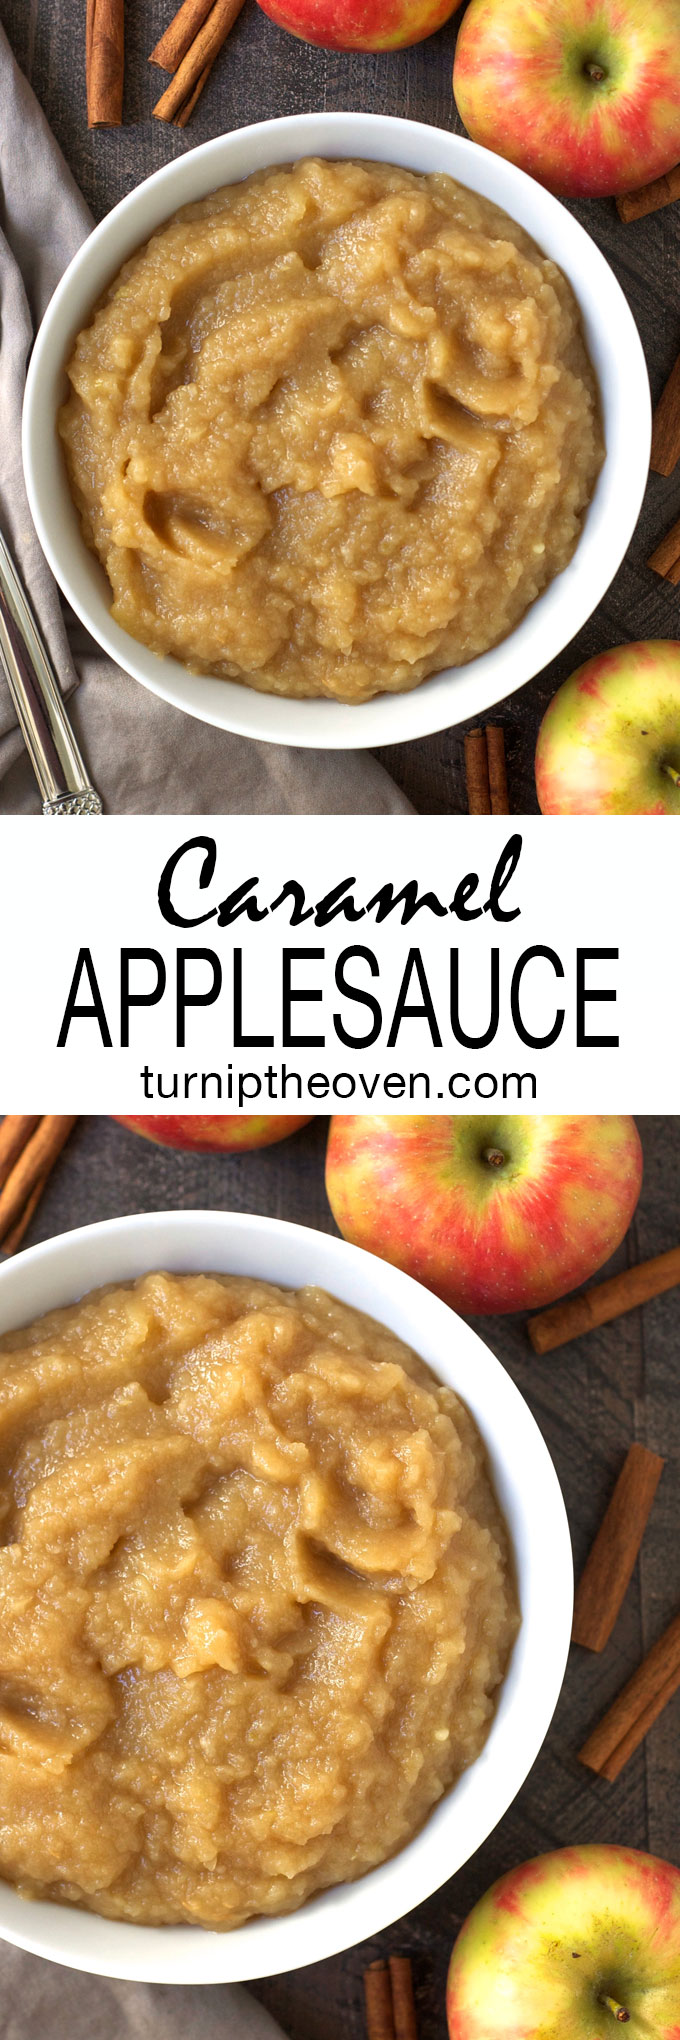 This easy homemade caramel applesauce is made with just five simple ingredients. Try it for breakfast over waffles or pancakes, or for dessert over vanilla ice cream!